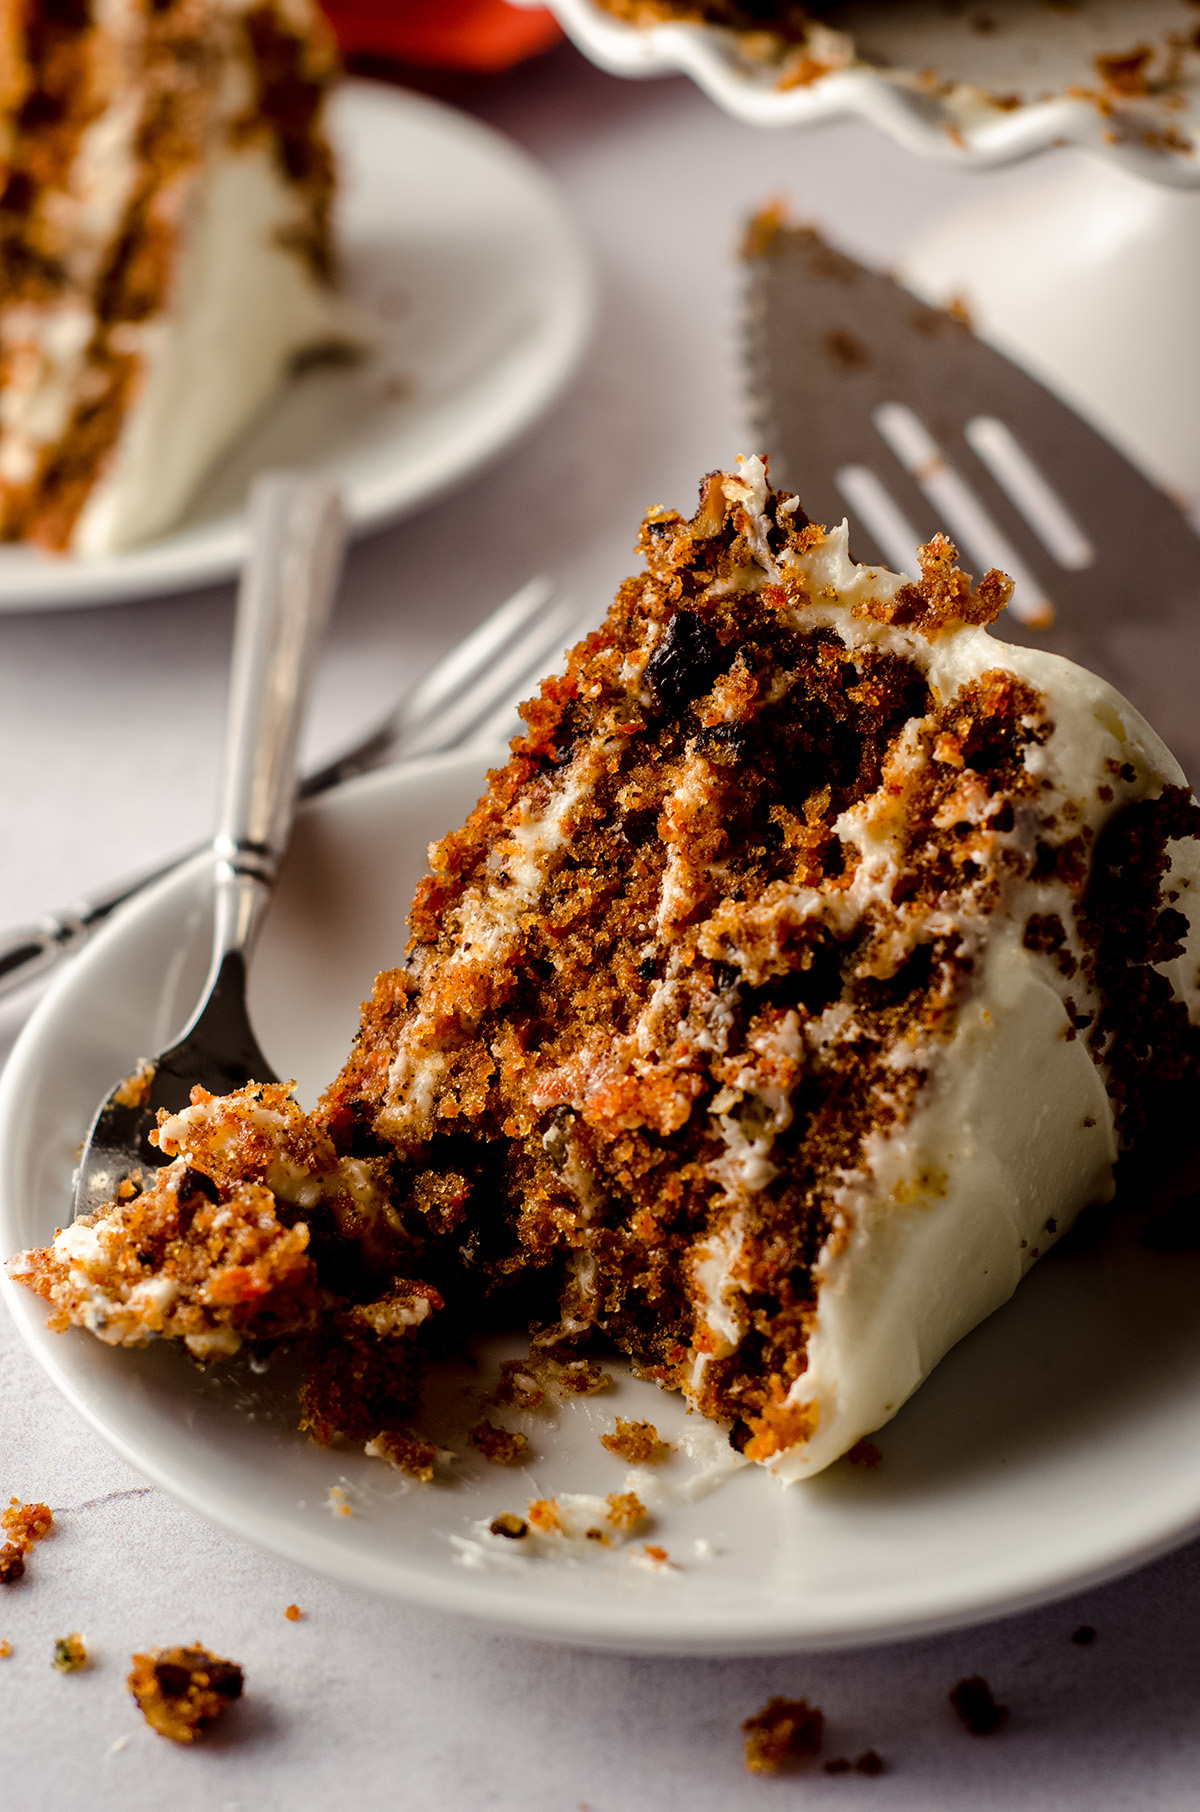 slice of carrot walnut cake on a white plate with a fork